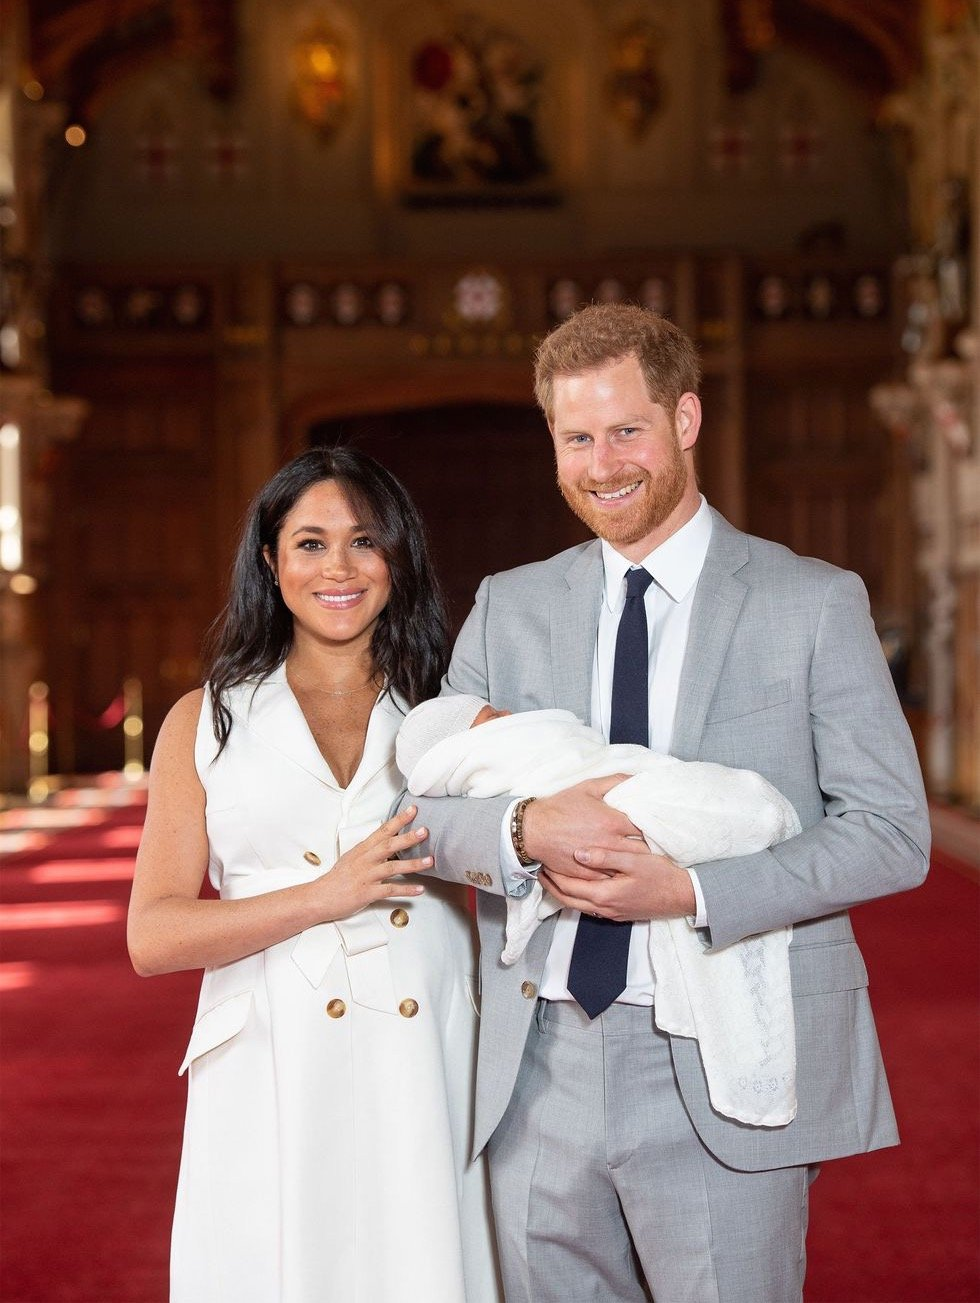 6 Fun Things About Meghan and Harry's Royal Baby